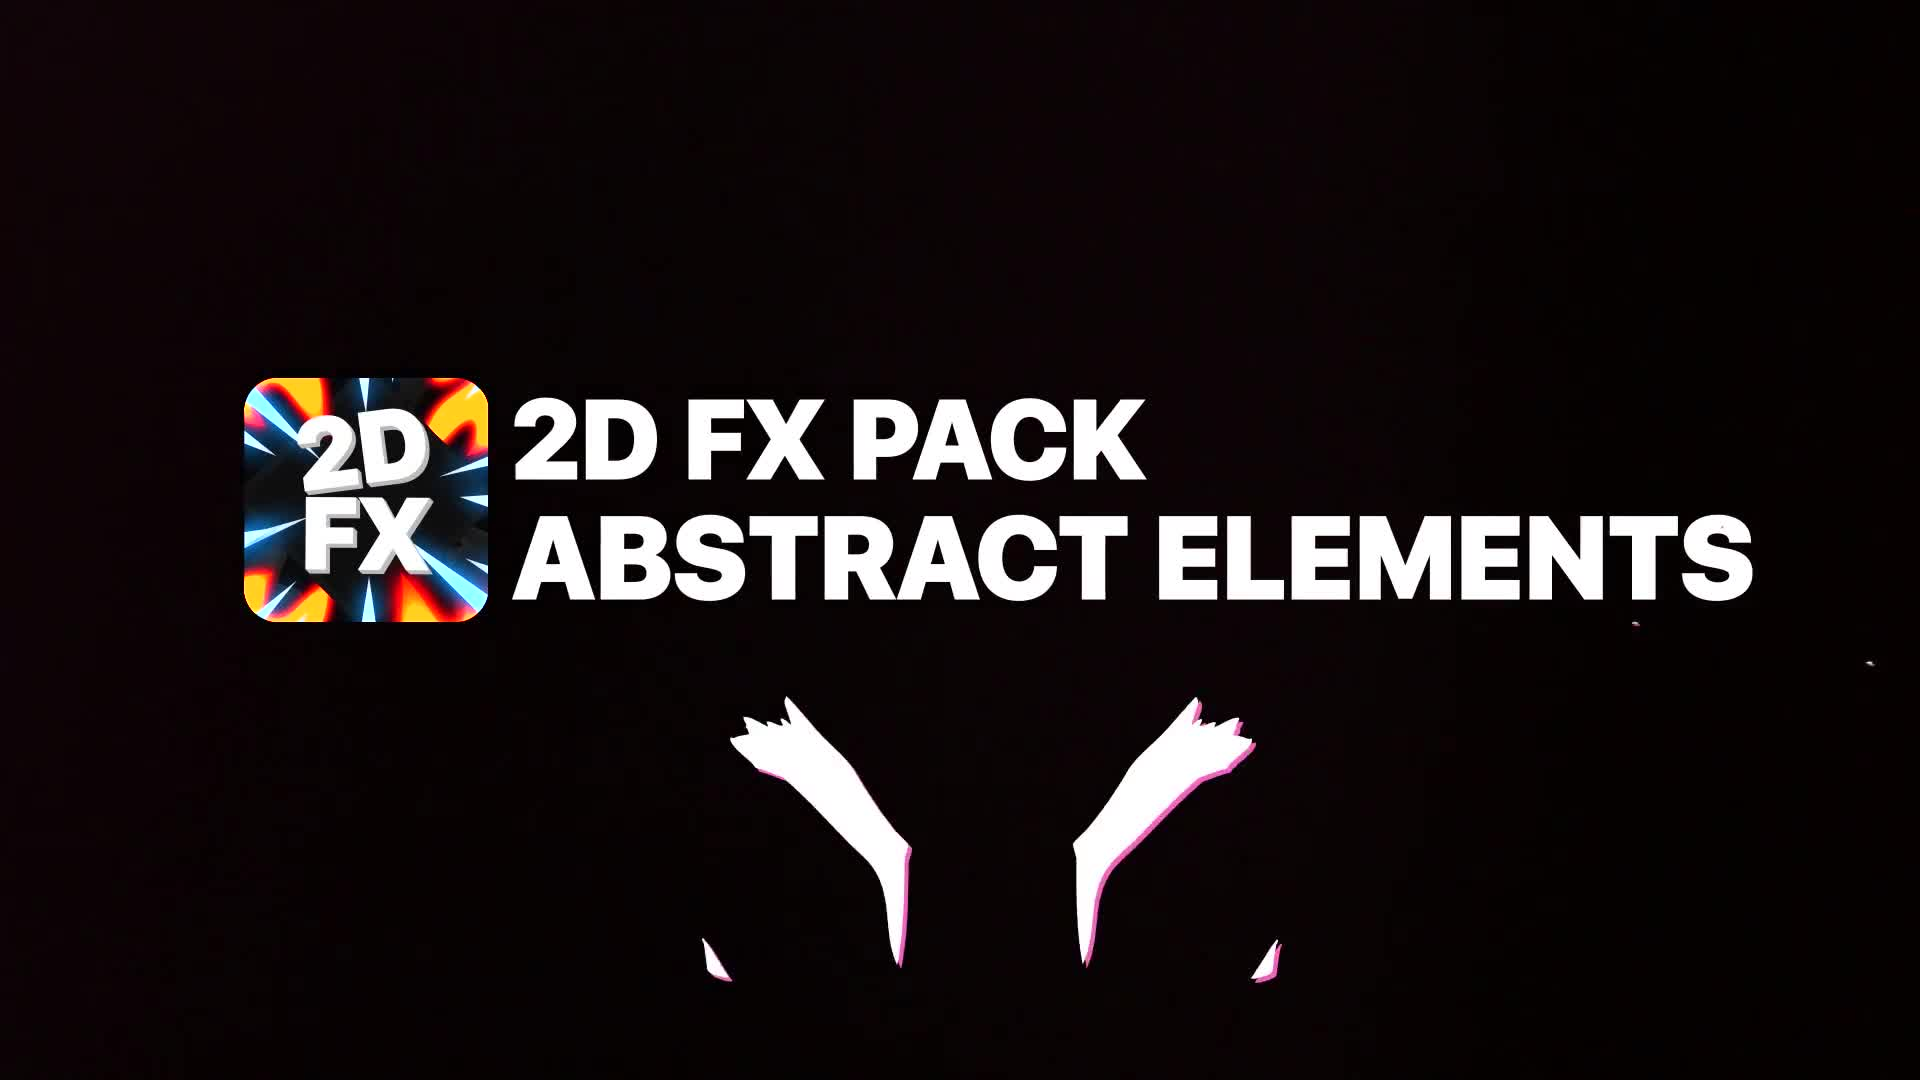 Abstract Shapes And Cartoon Titles | Premiere Pro MOGRT Videohive 24743565 Premiere Pro Image 1